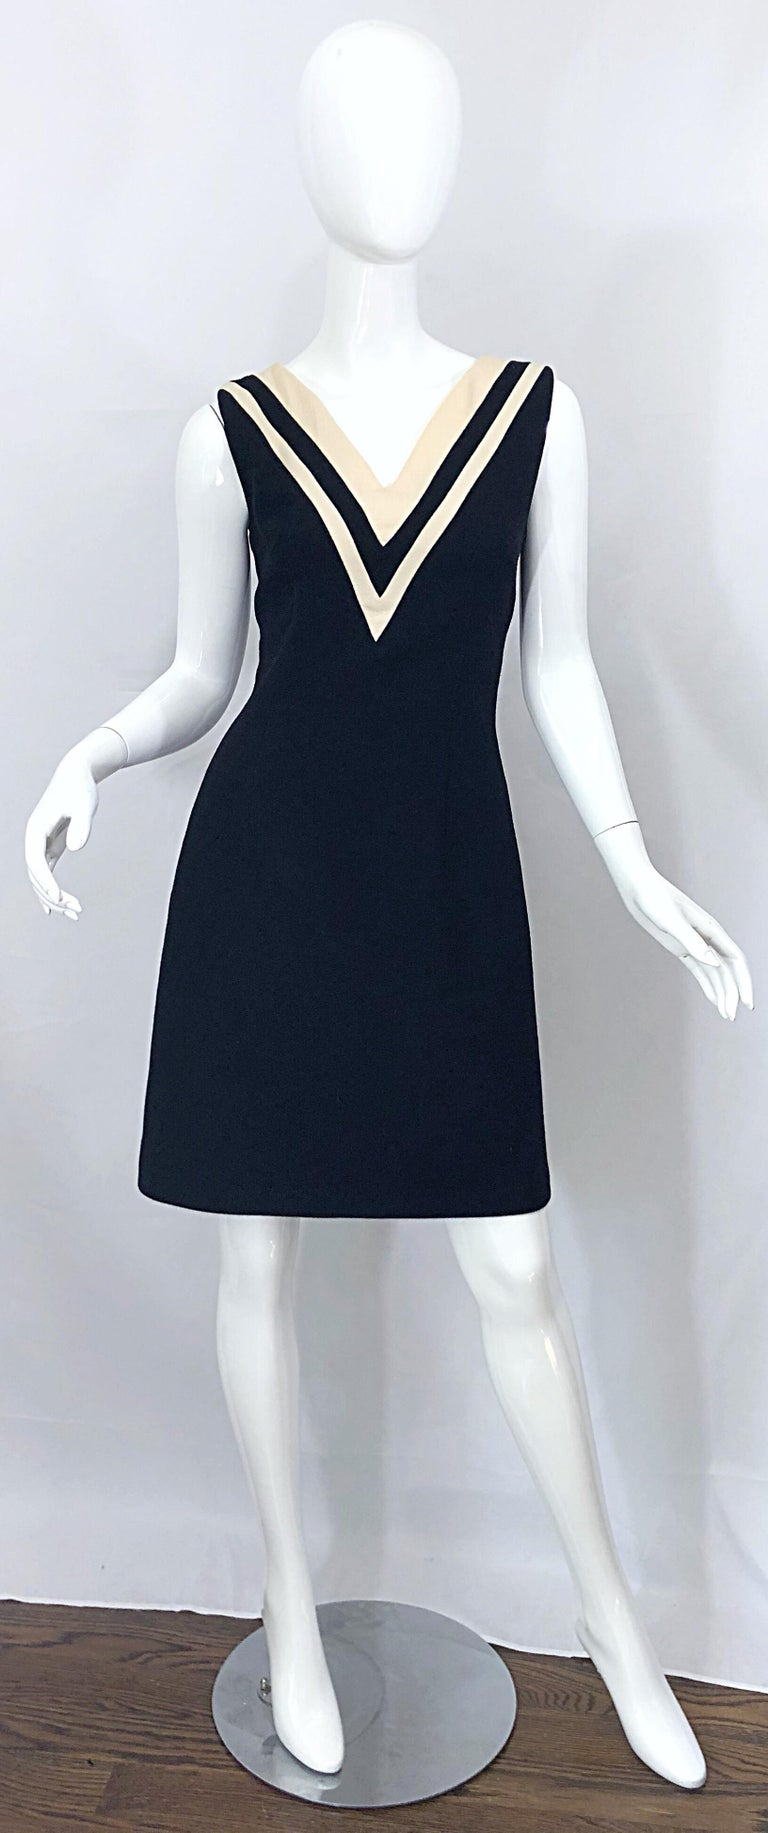 Dolce & Gabbana Size 42 / US 6 Black and Ivory 1990s Does 1960s Wool Shift Dress For Sale 8